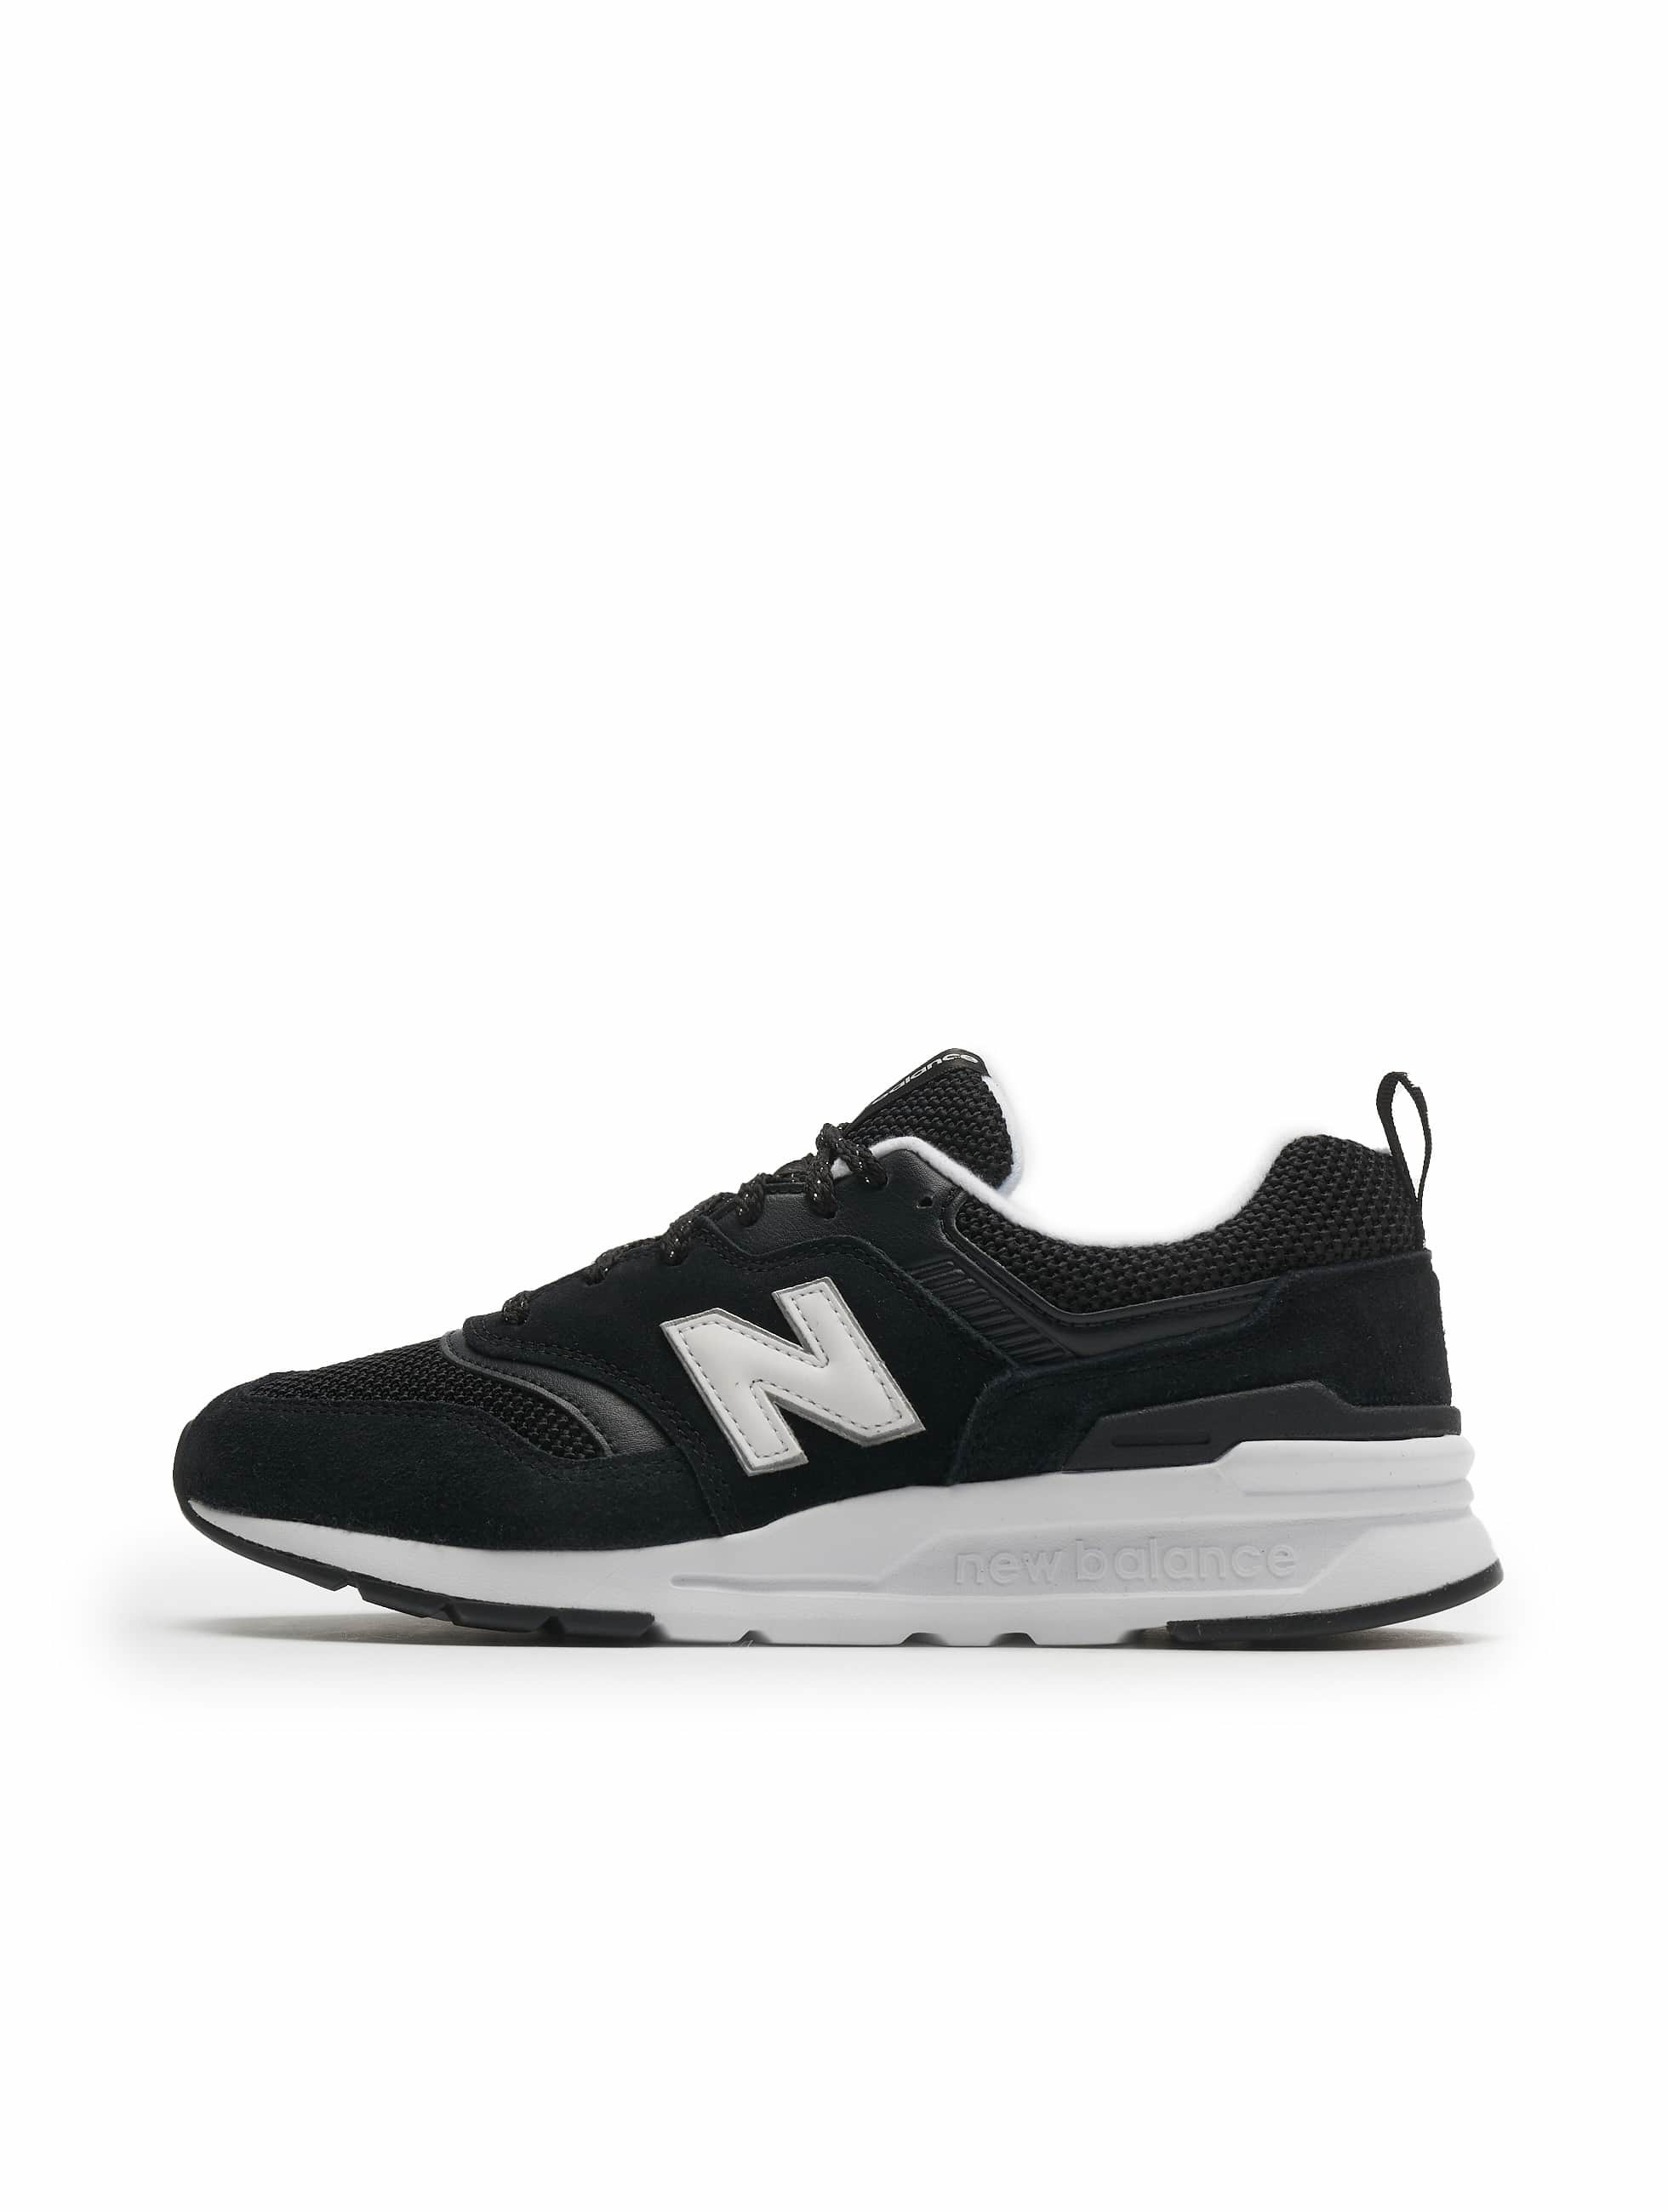 New Black Sneakers Cw 997 Balance 8nwmOvN0